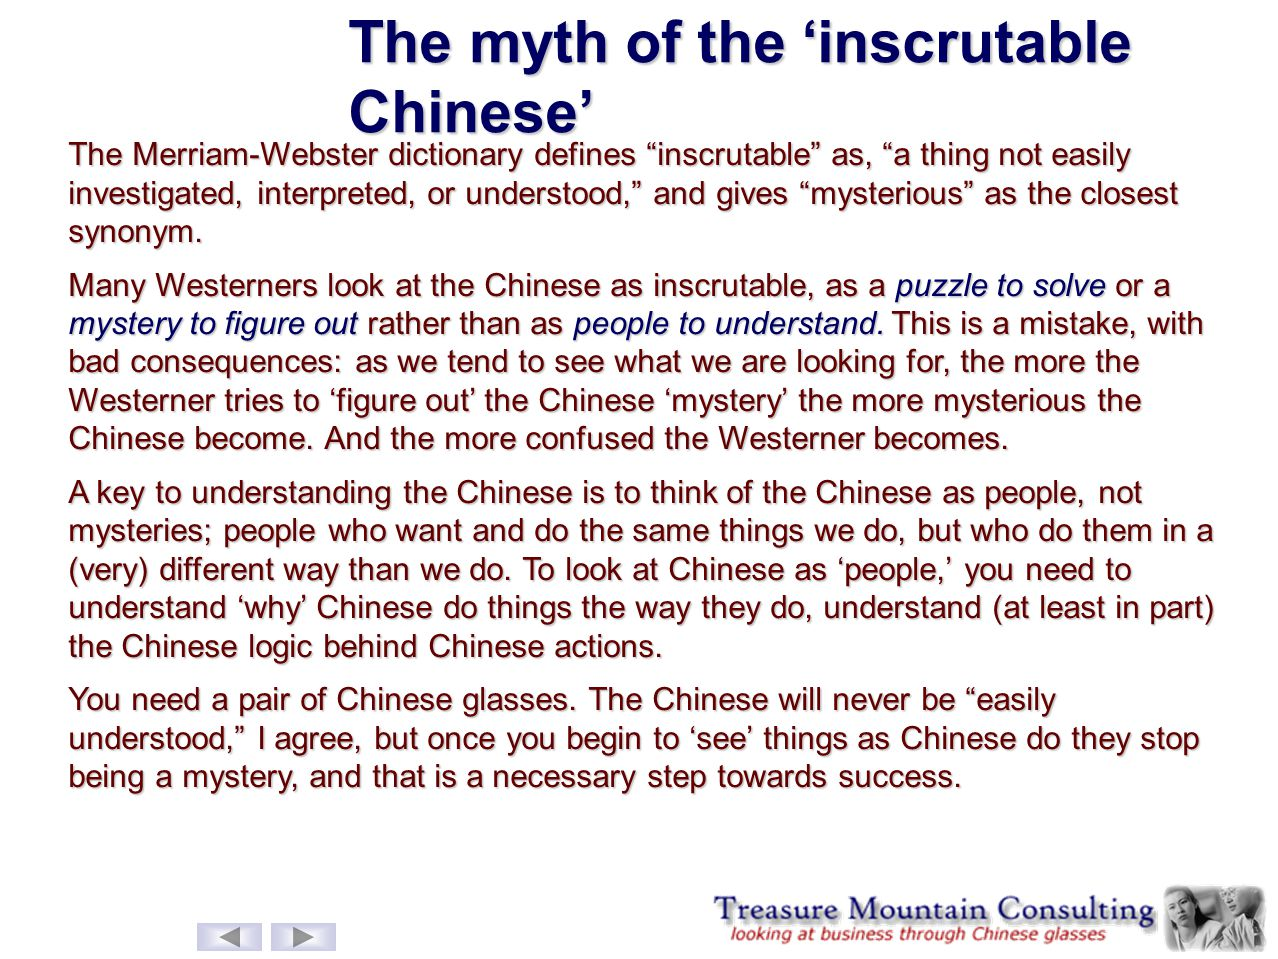 The myth of the 'inscrutable Chinese'